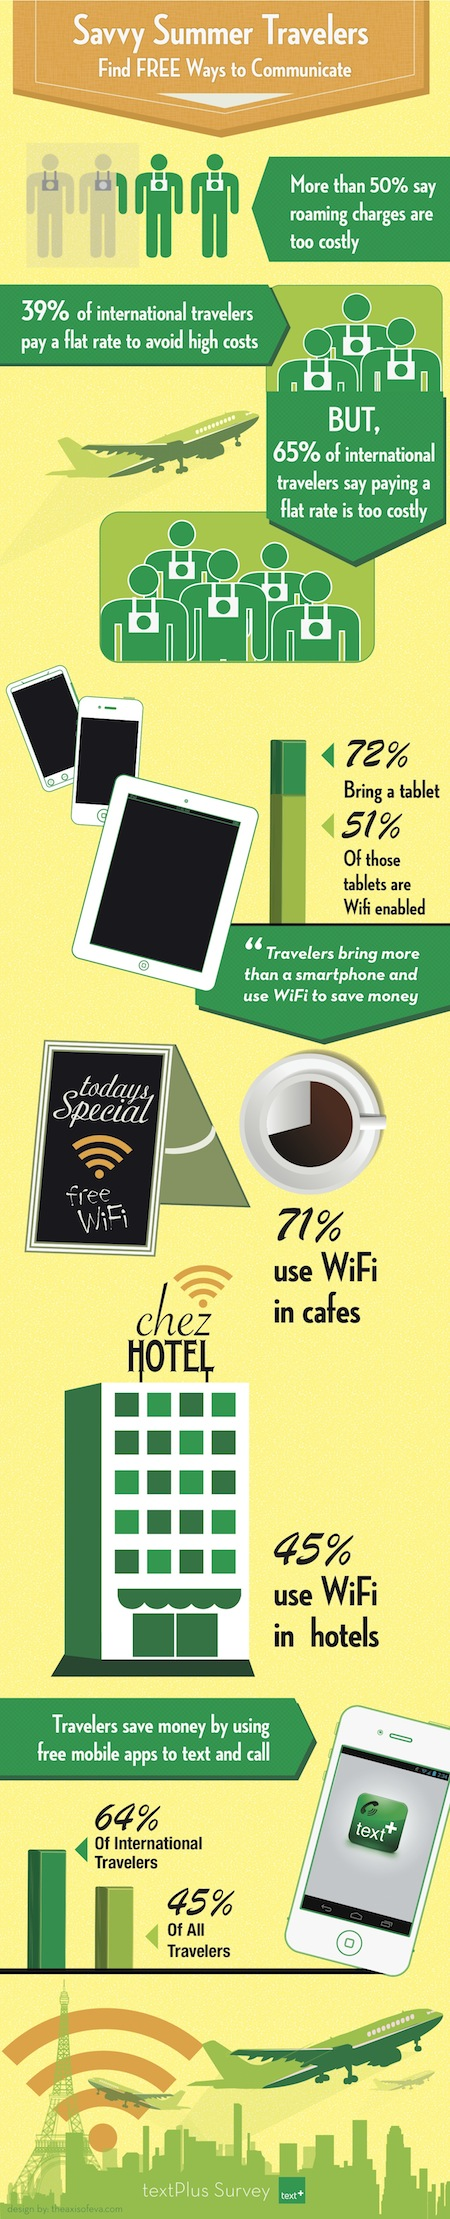 """[infographic] """"Savvy Summer Travelers"""" Jun2012 by"""